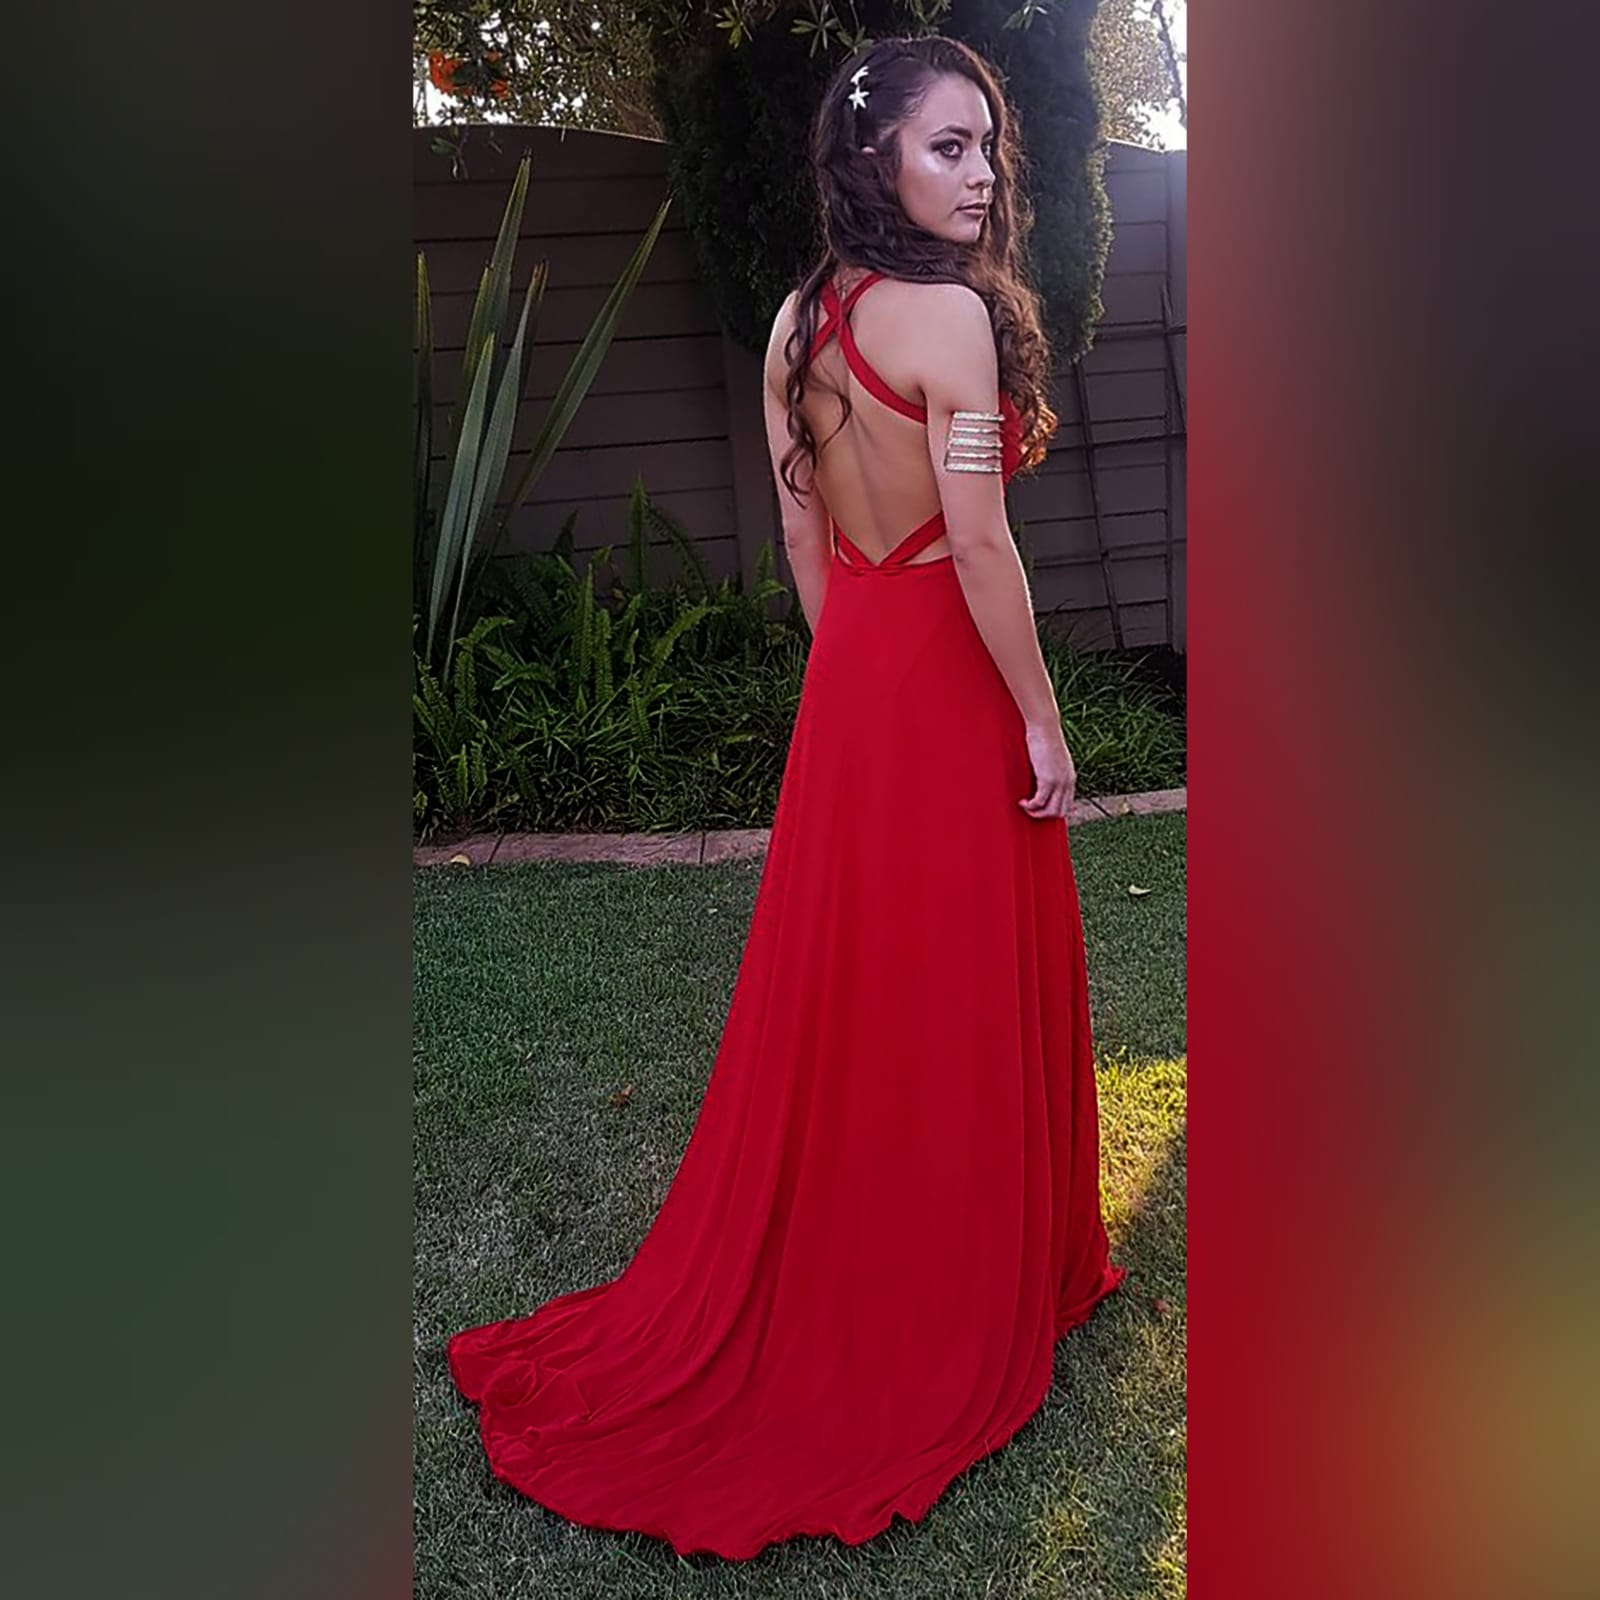 Red long sexy long prom dress 2 red long sexy long prom dress with a low v neckline & slit, a low open back with cross straps on the upper back, with a train.